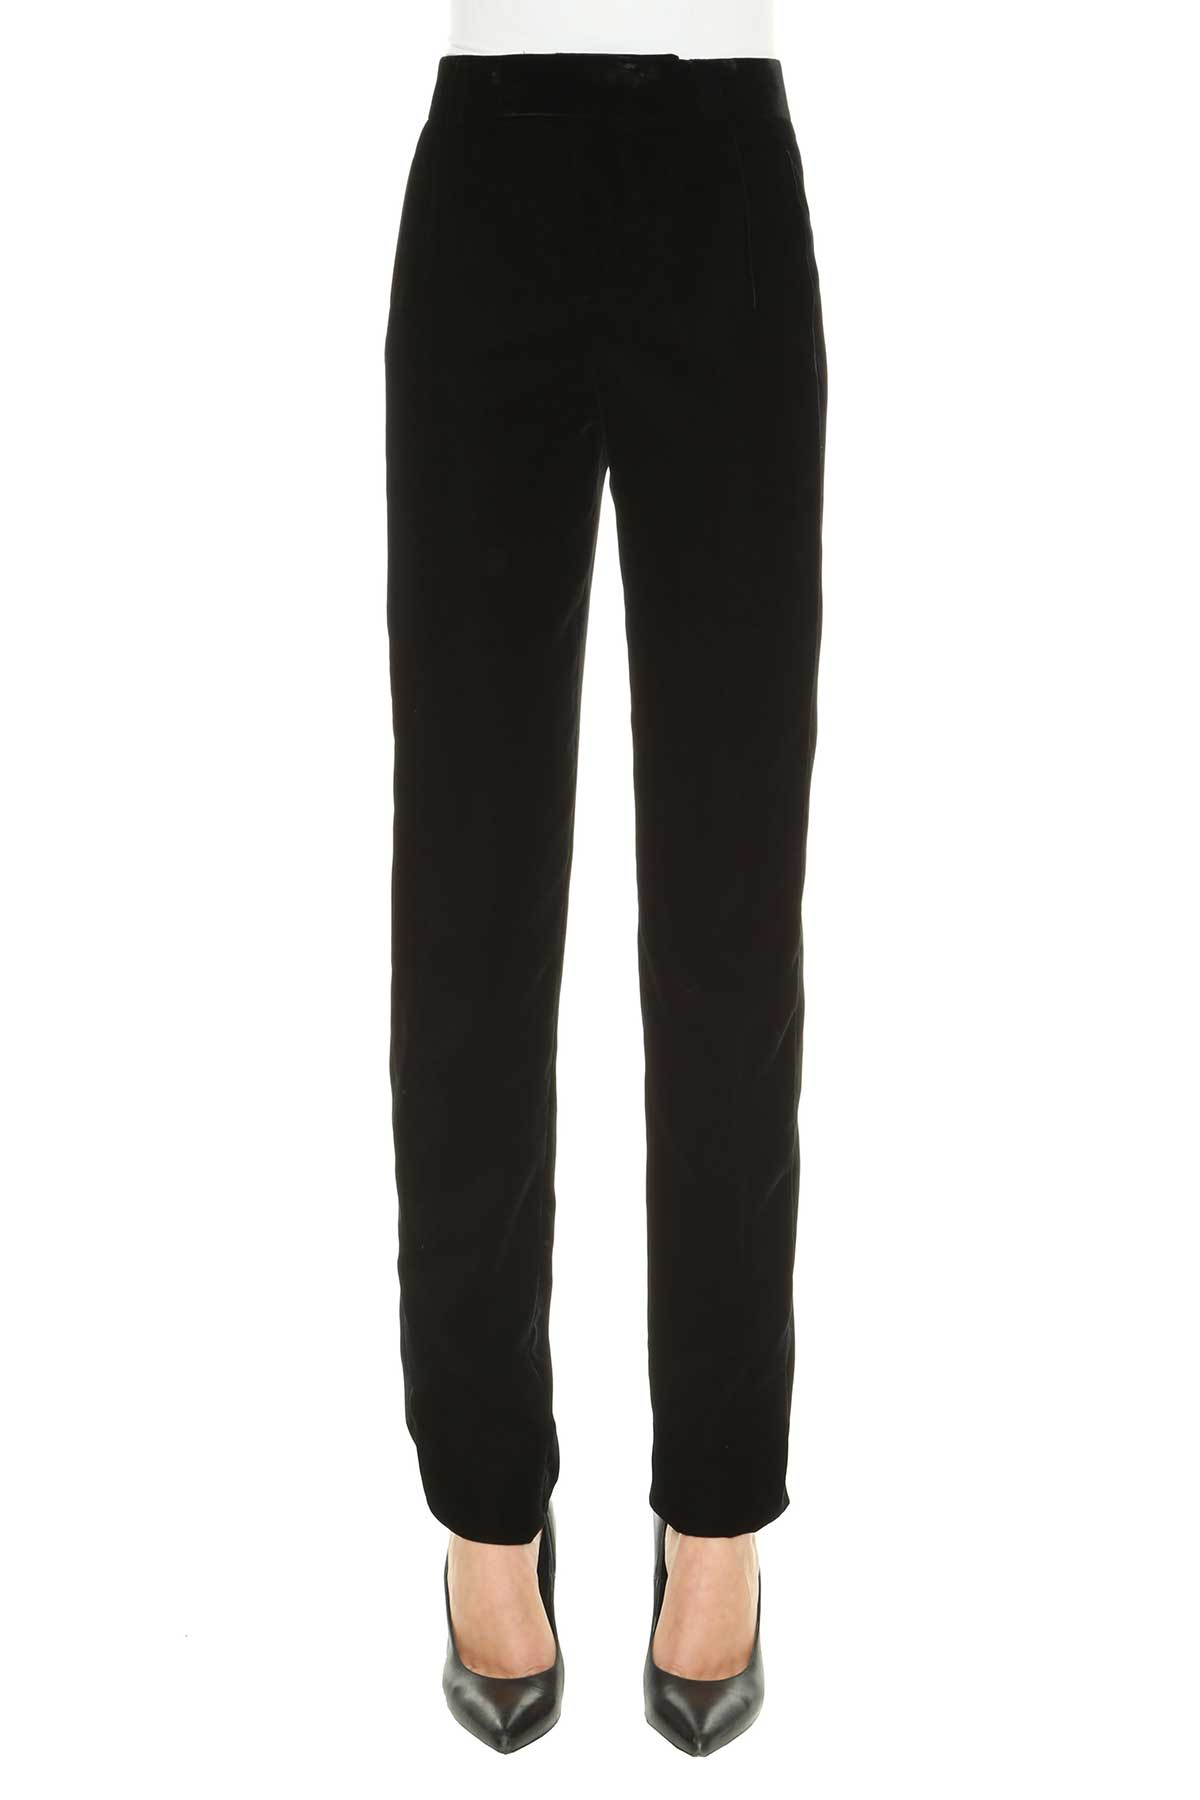 Saint Laurent Velvet Trousers